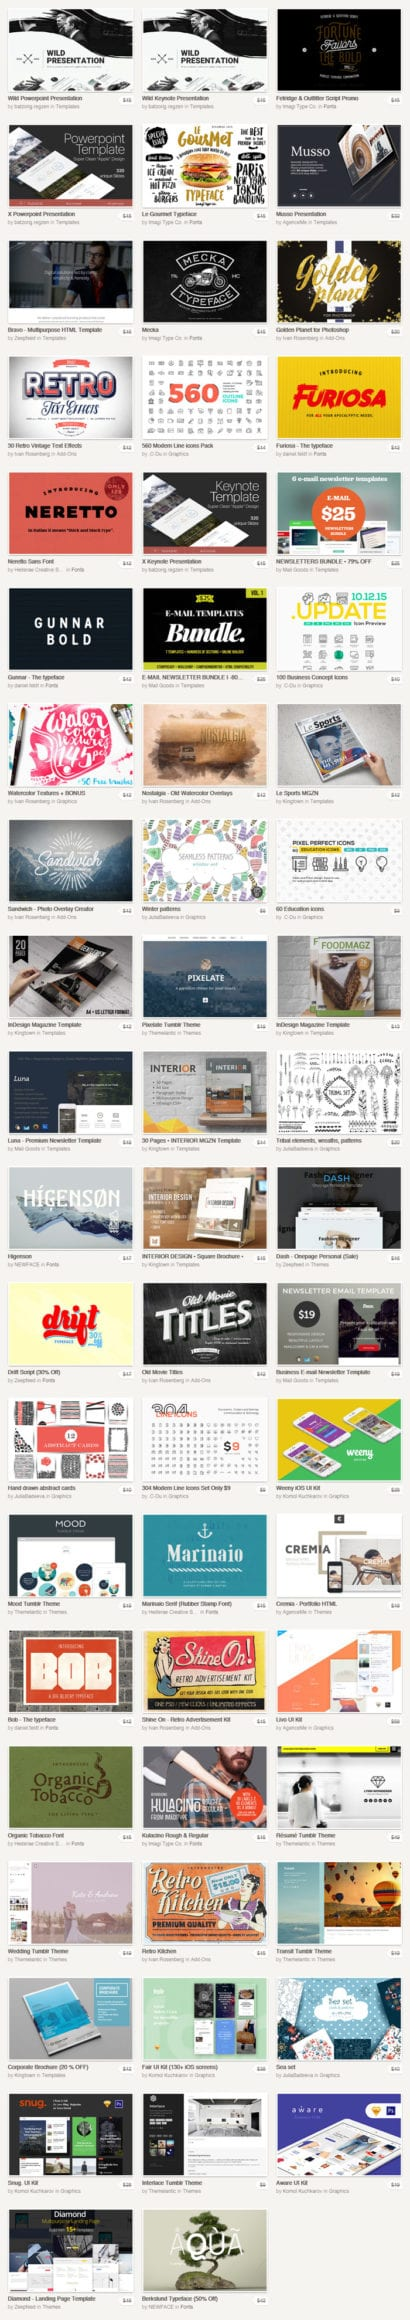 1-Creative-Markets-January-Big-Bundle-is-equipped-with-62-amazing-products-worth-over-1057-for-only-39.-14-fonts-15-graphics-7-Add-Ons-17-templates-and-a-lot-more